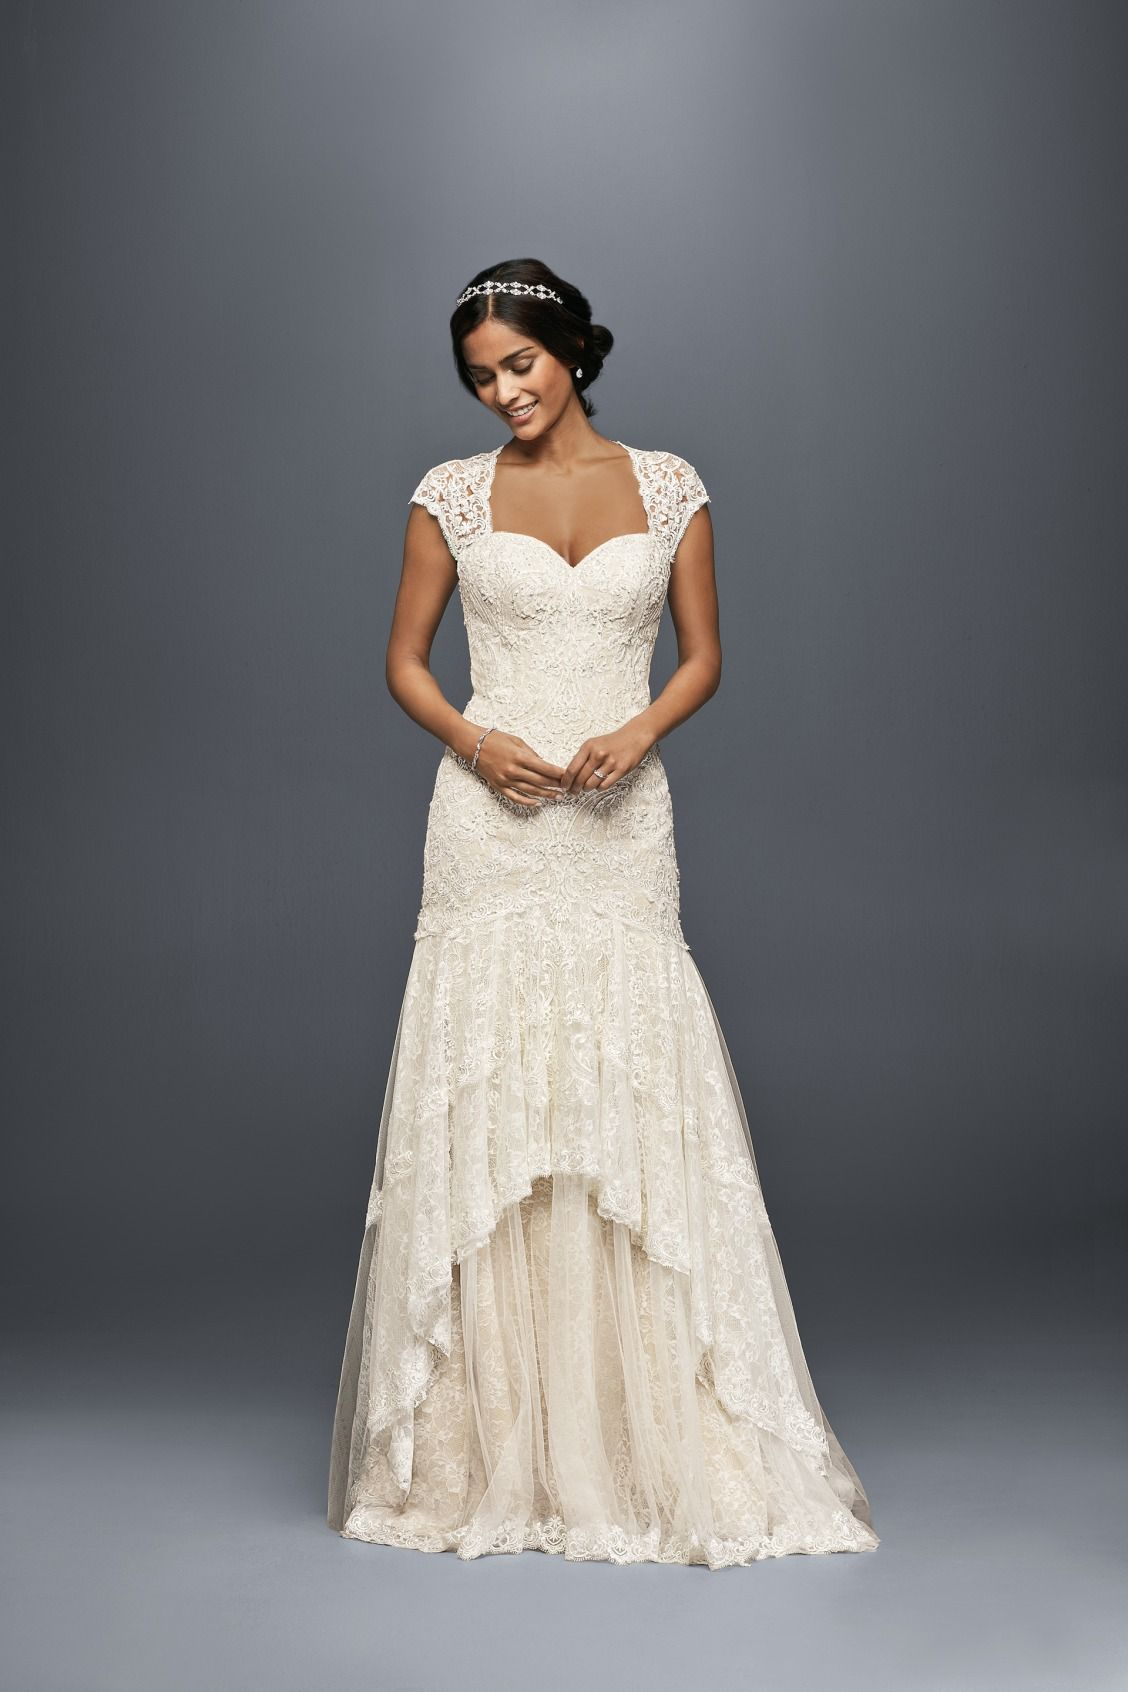 New Melissa Sweet Wedding Dresses For 2017 Cap Sleeve Sweetheart Neckline Tiered Lace A Line Dress Available At David S Bridal